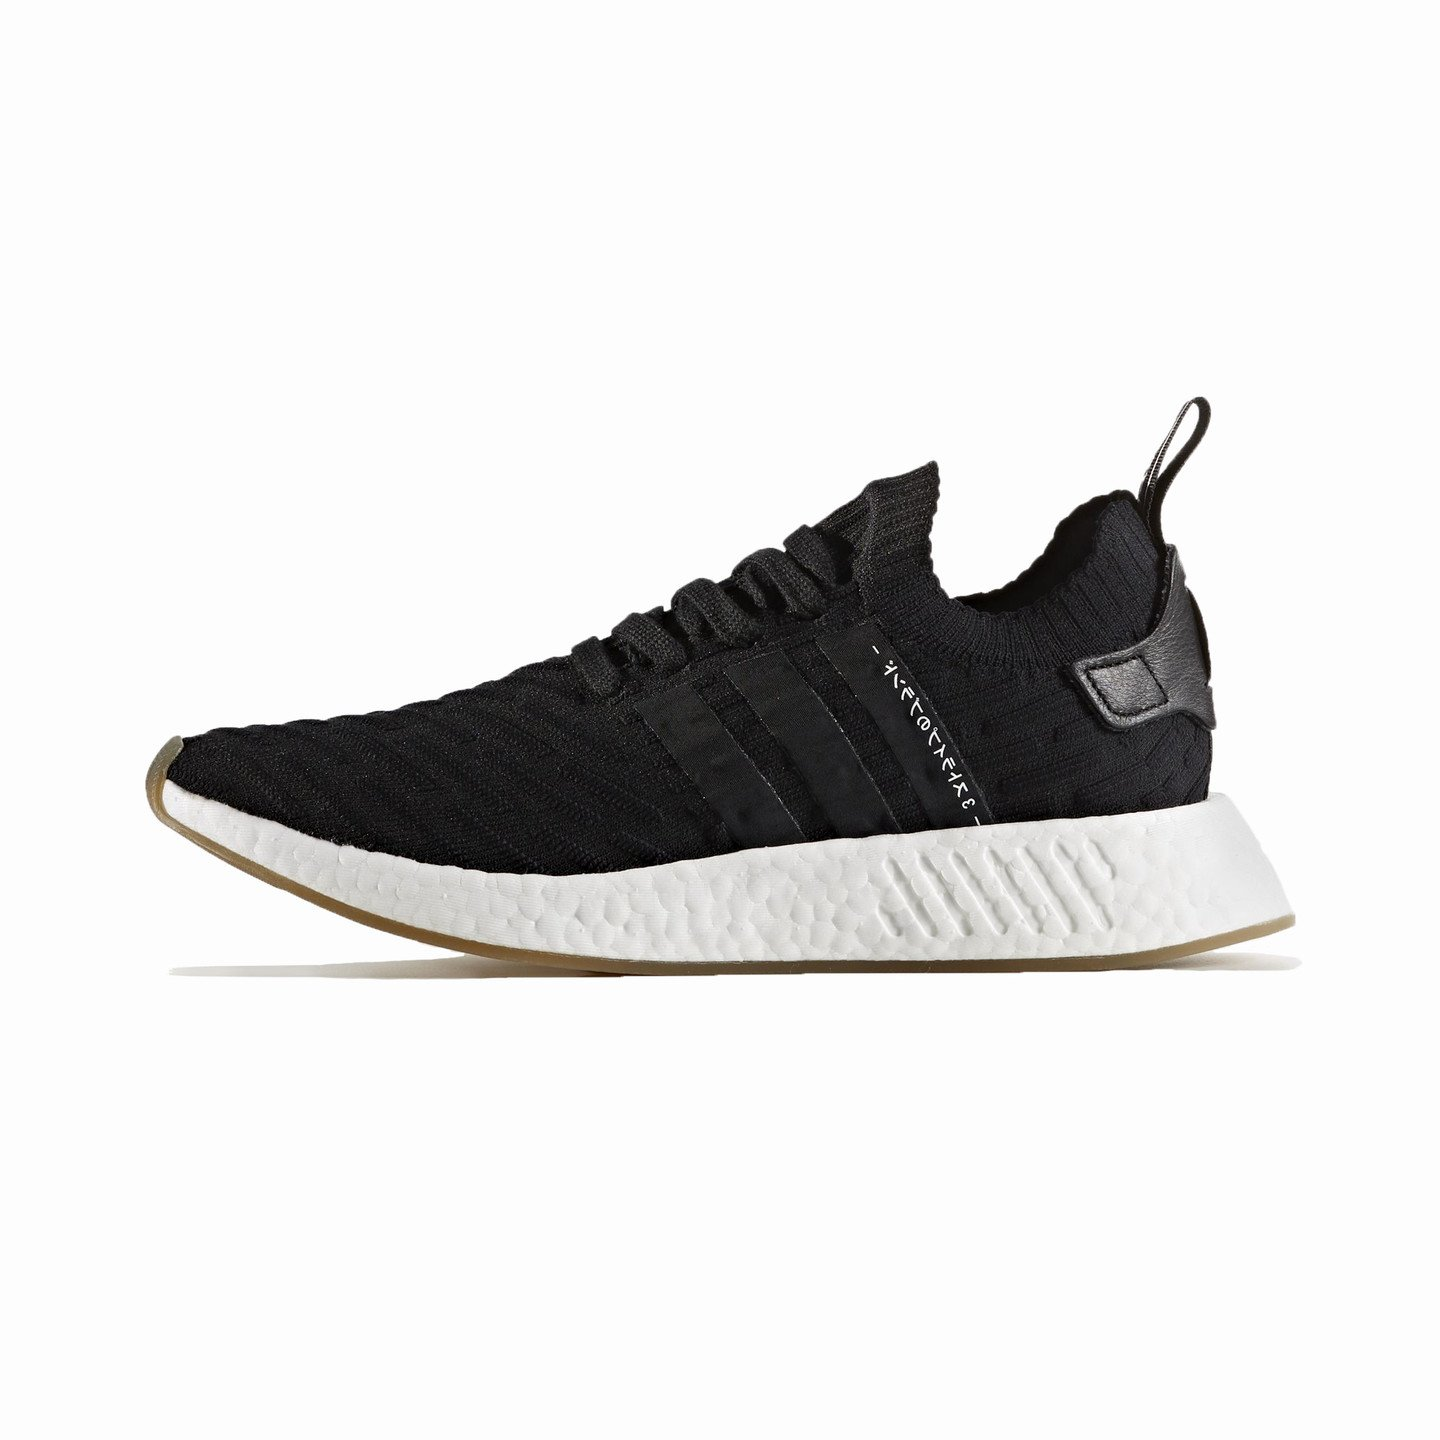 Adidas NMD R2 PK 'Japan' Black / Black / White BY9696